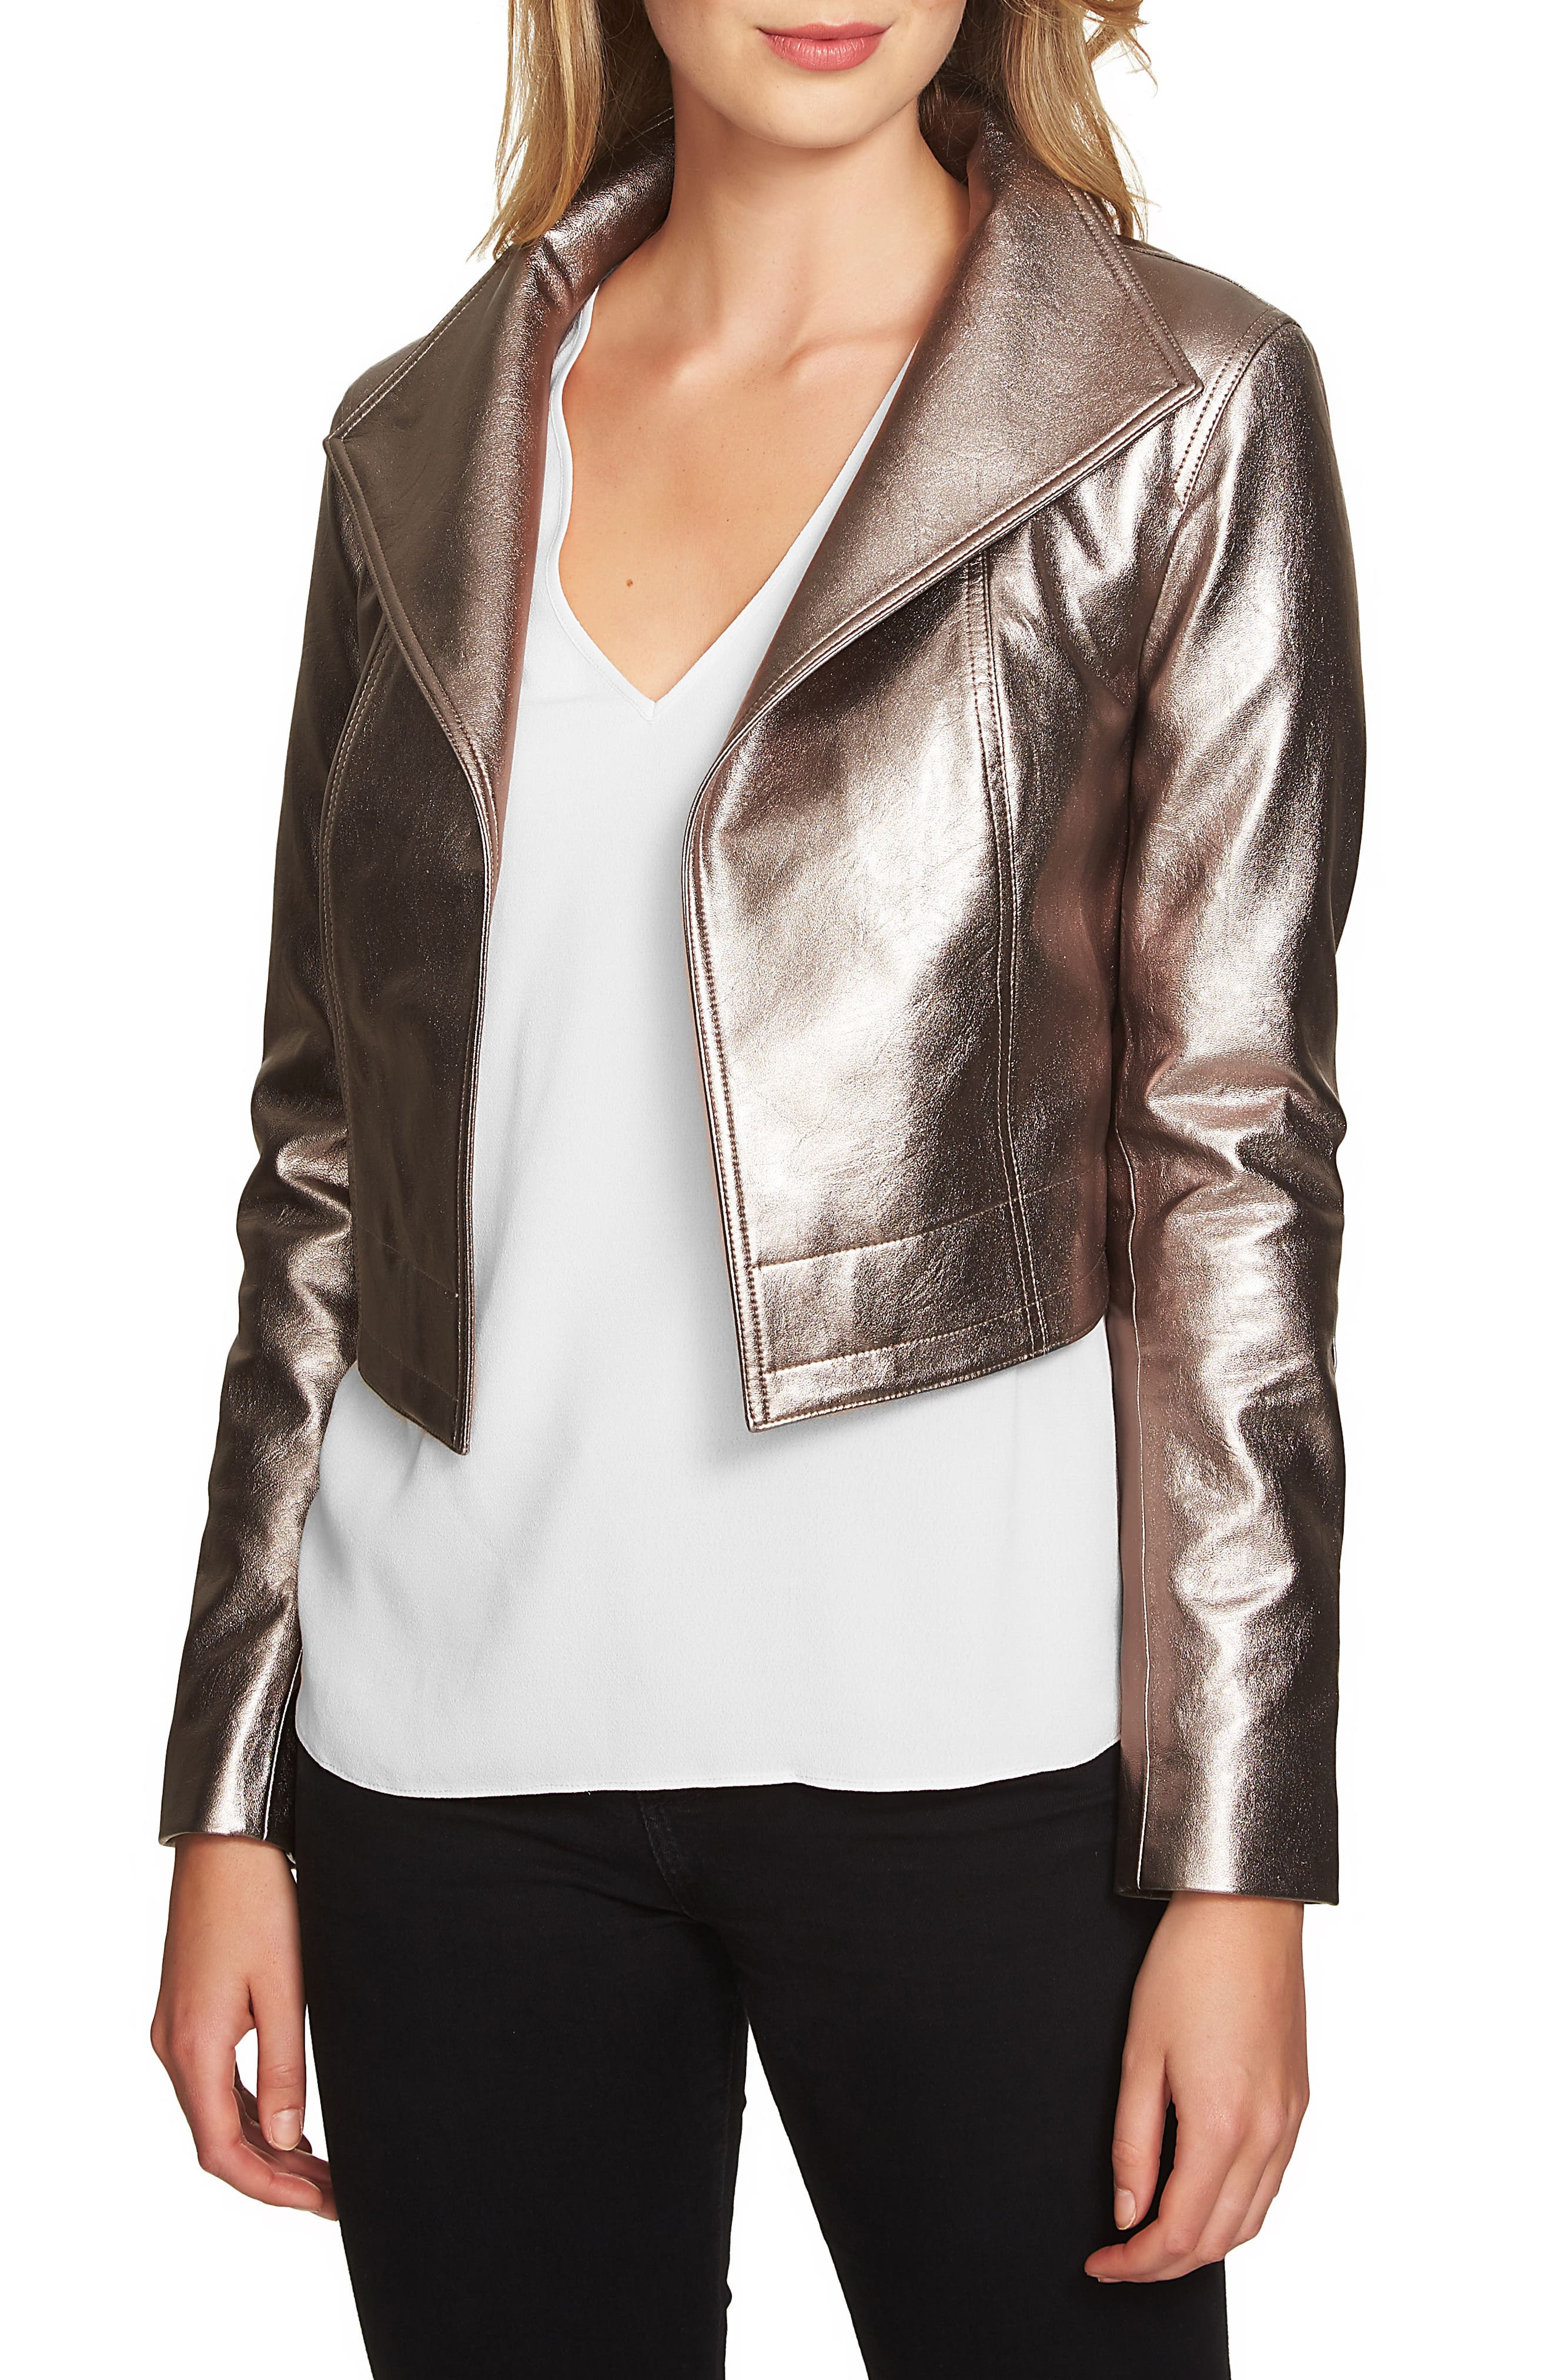 Main Image - 1.STATE Crop Faux Leather Jacket